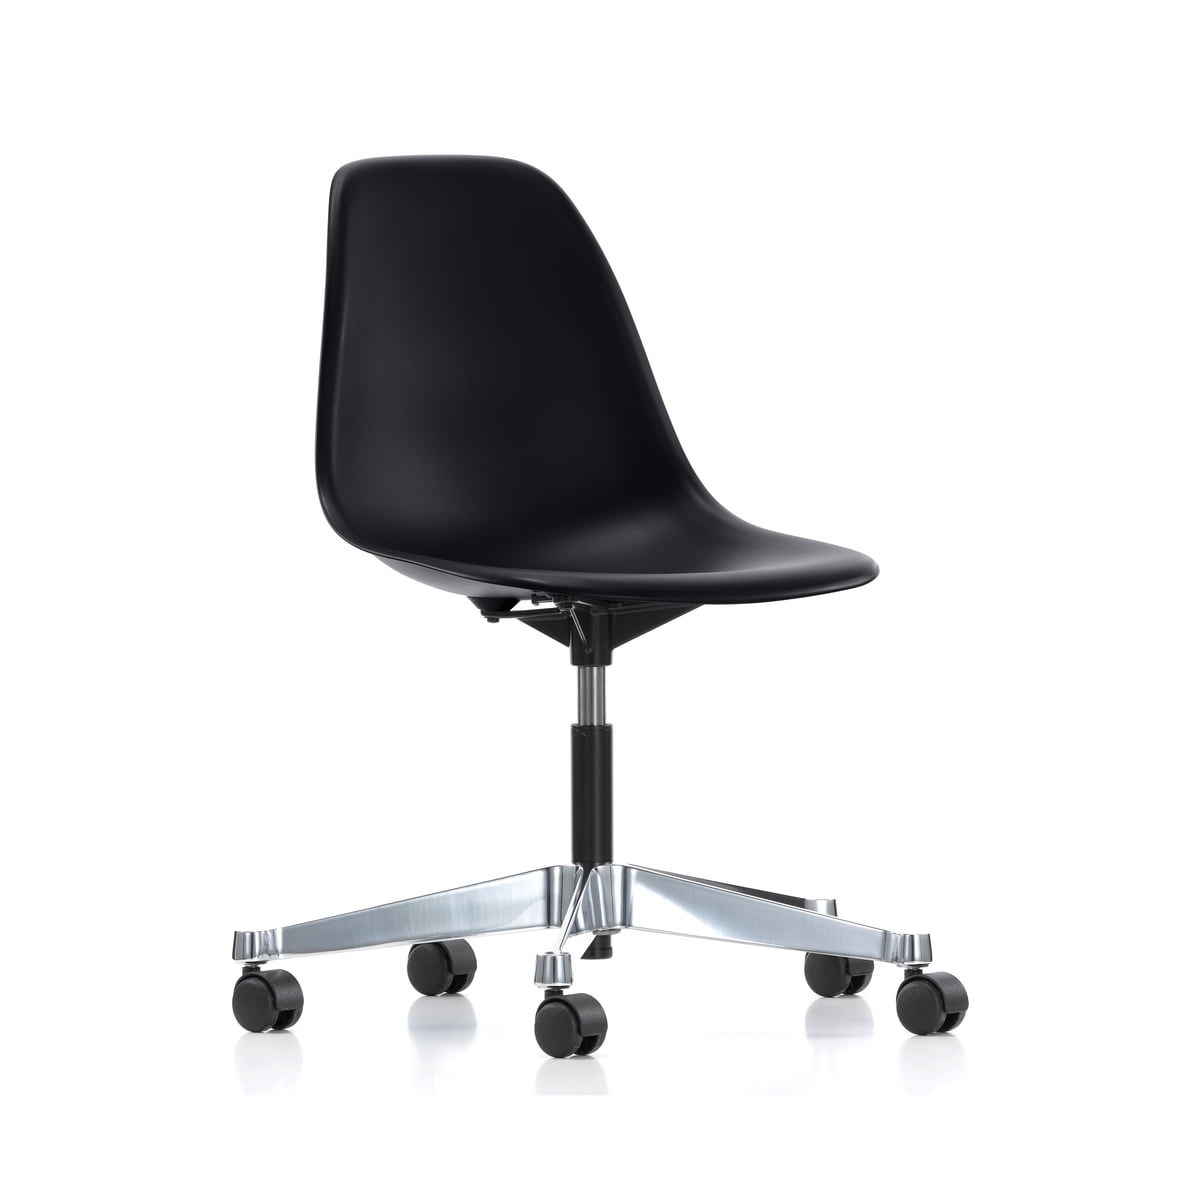 Eames plastic chairs all office - Vitra Eames Plastic Side Chair Pscc